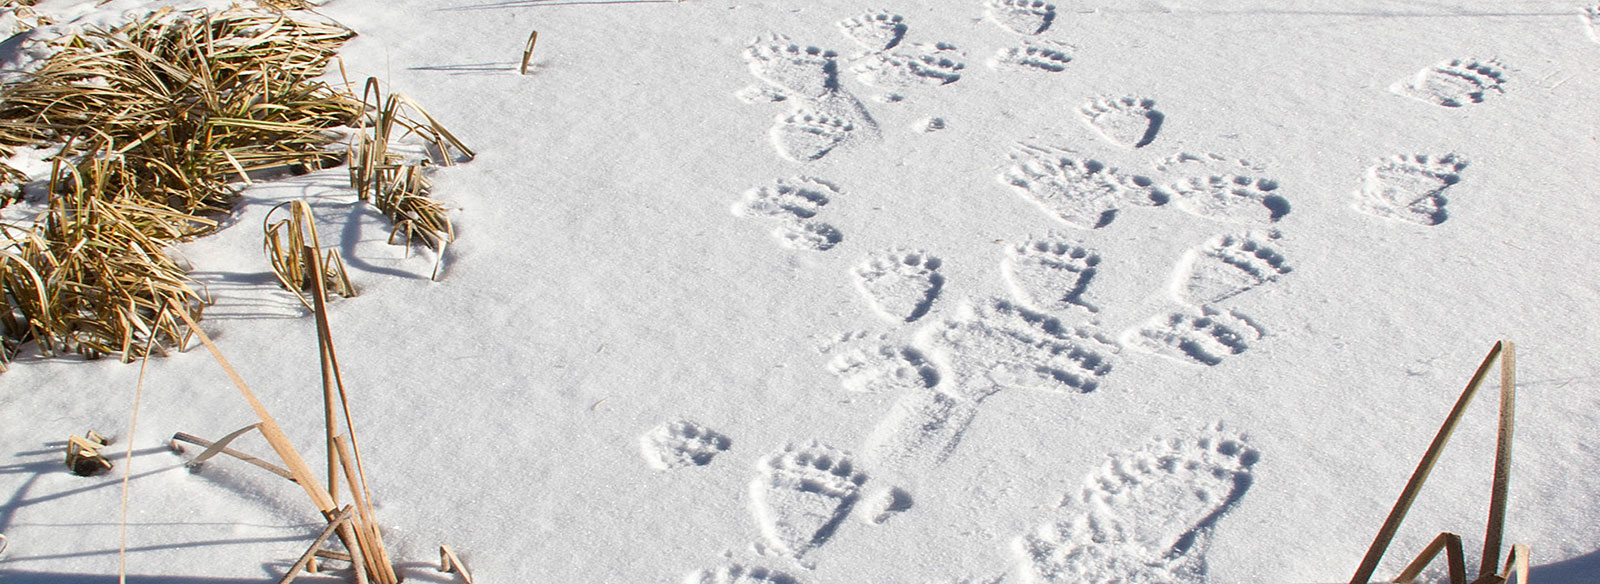 Photo of grizzly tracks in the snow